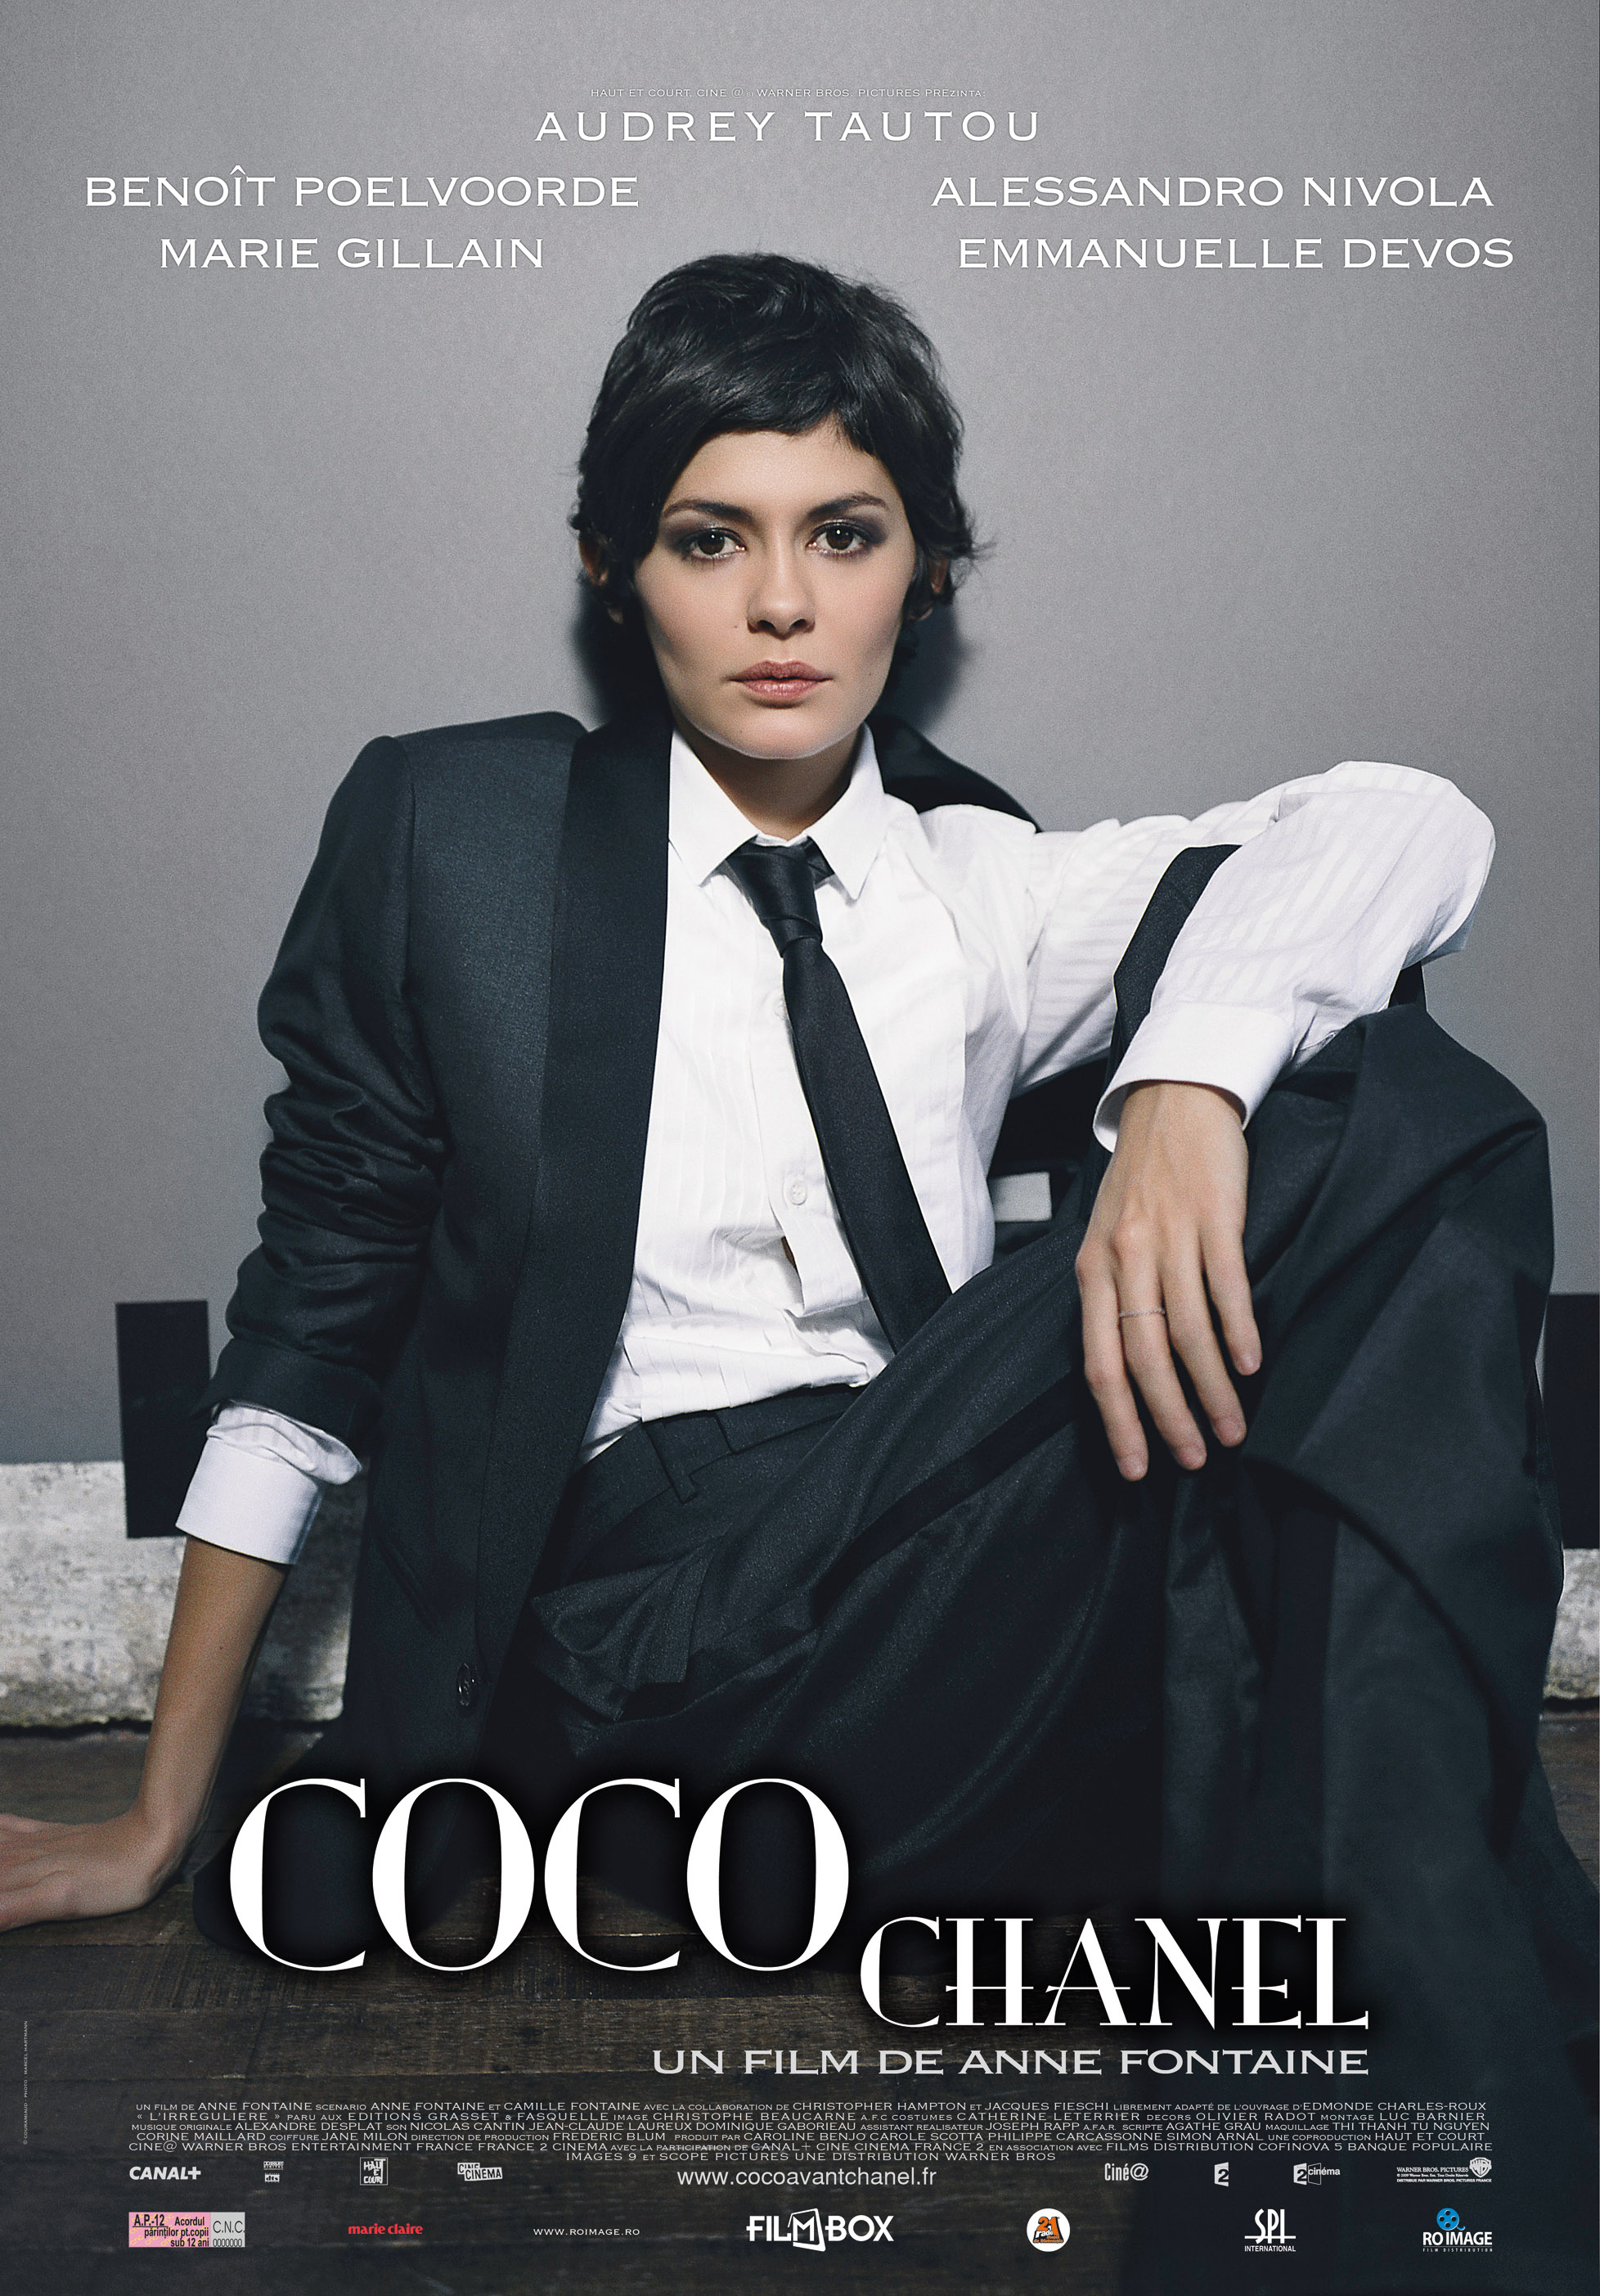 coco avant chanel 2009 movie